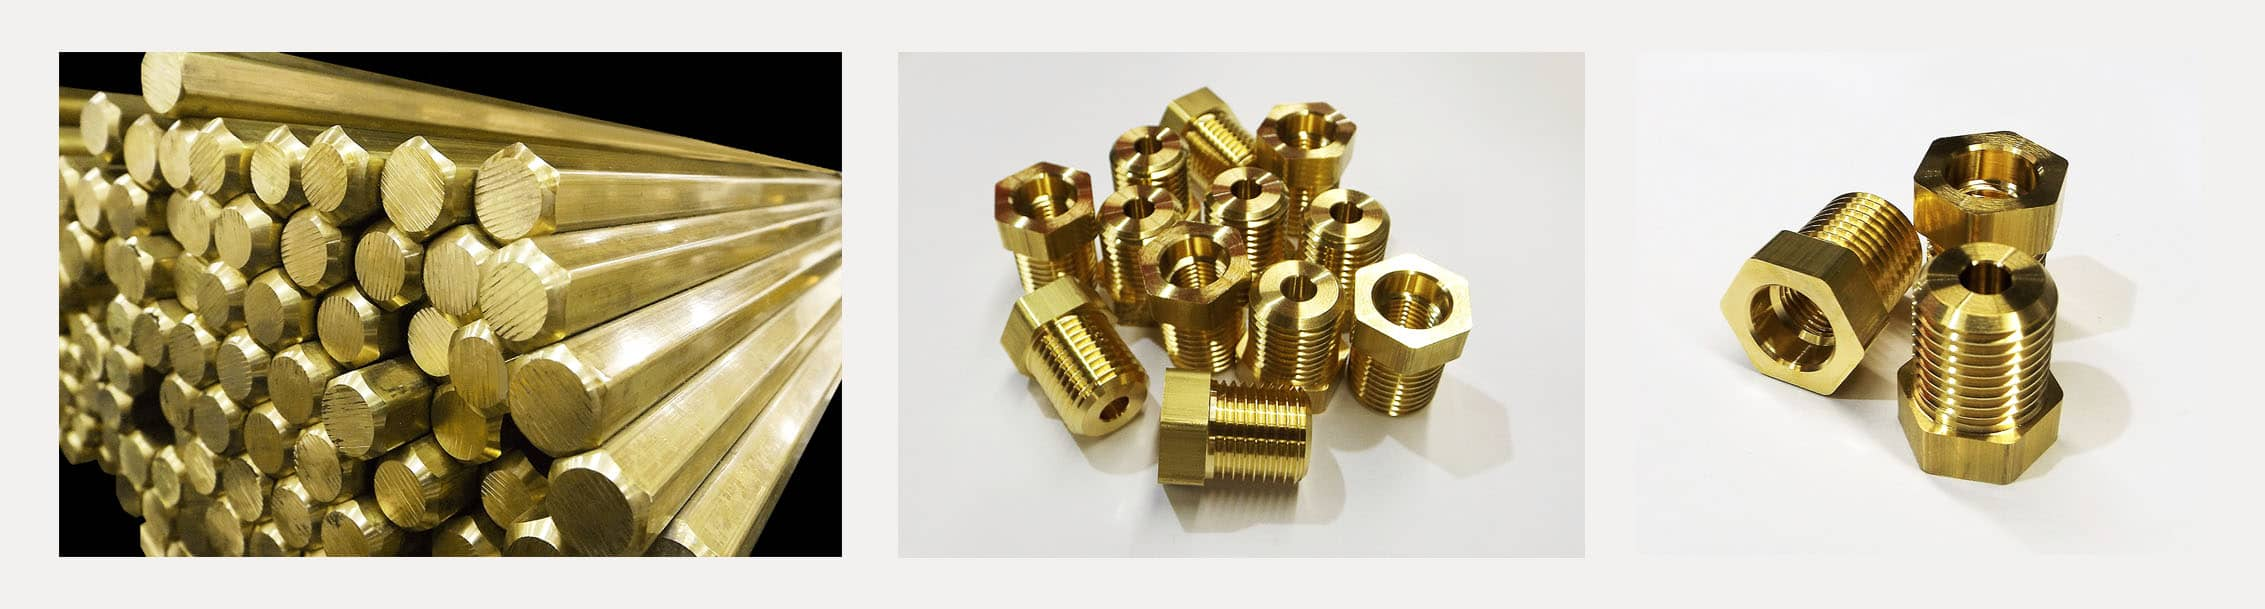 brass 360 machining